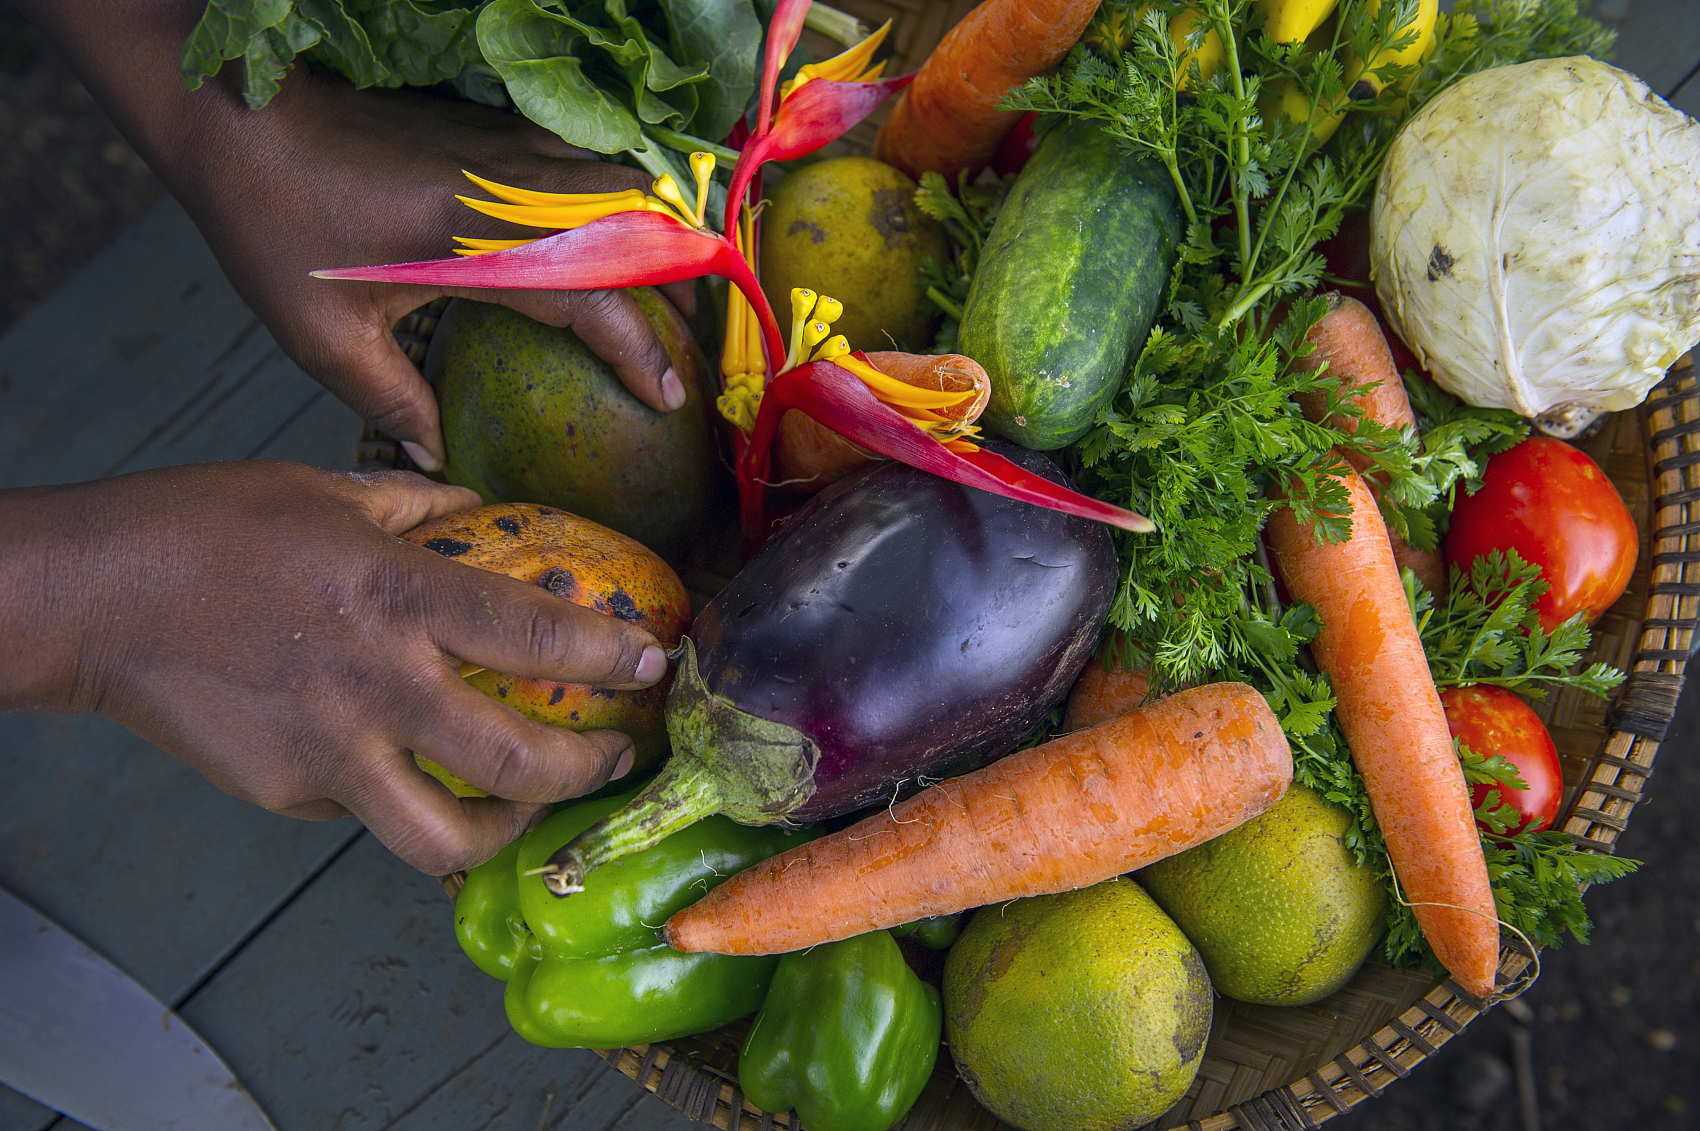 UN chief calls for efforts to ensure sustainable, healthy diets for all